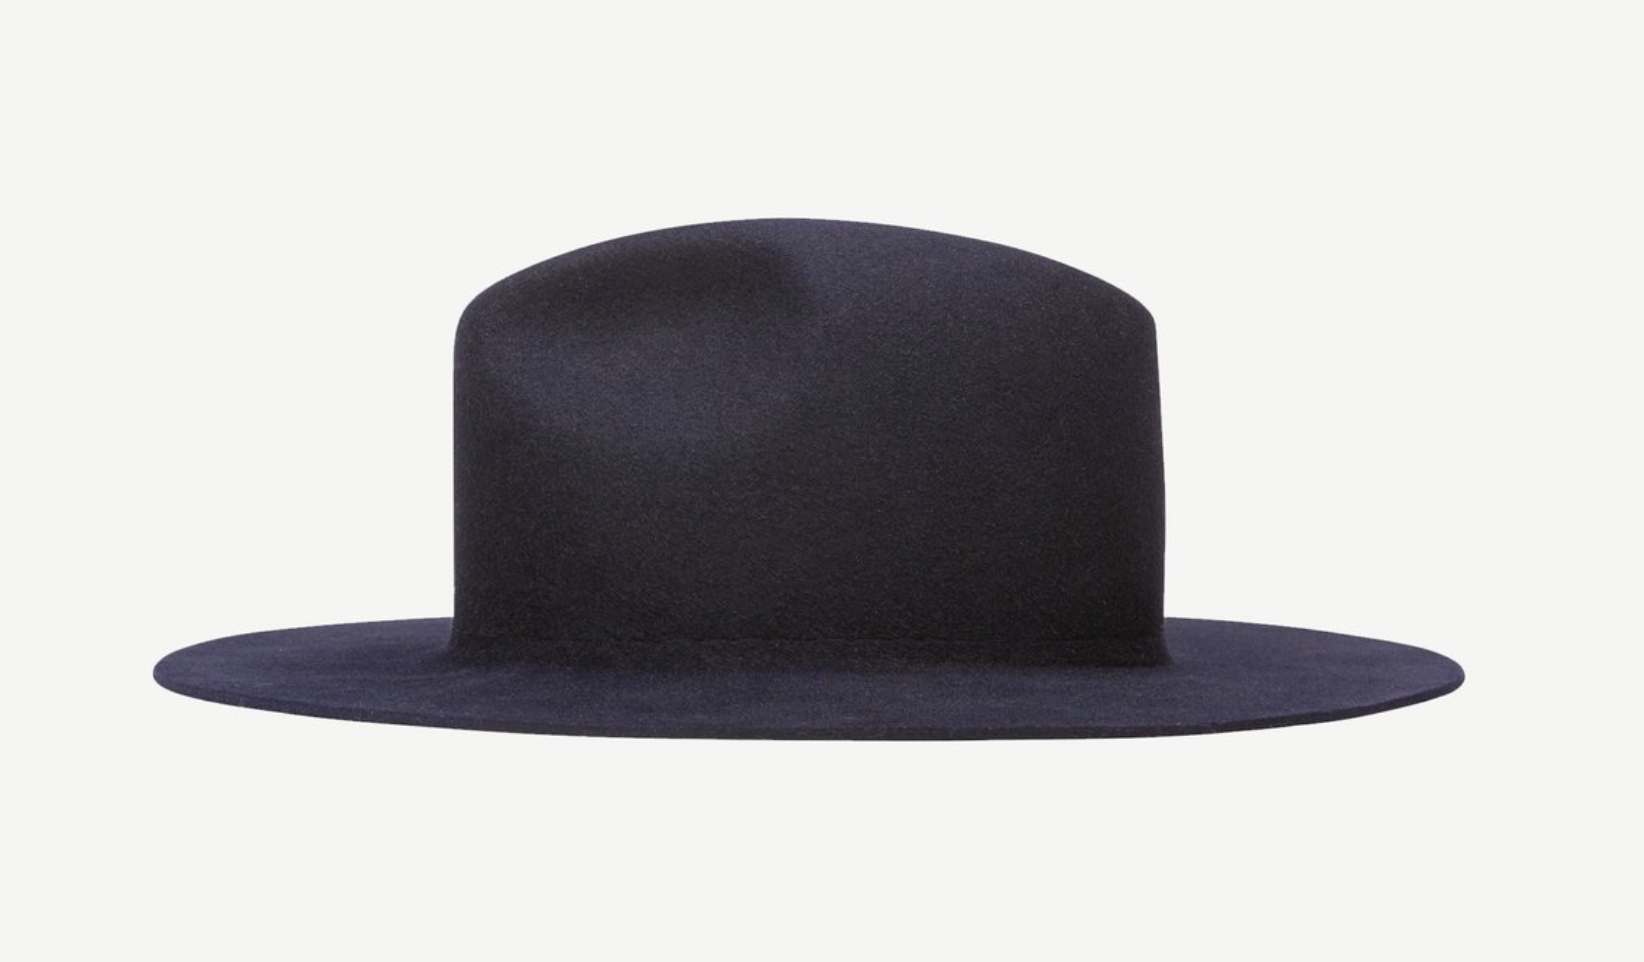 Gavoha Trooper hat in Navy - FASHION GIFT IDEAS - THE ULTIMATE GIFT LIST FOR MODERN MEN